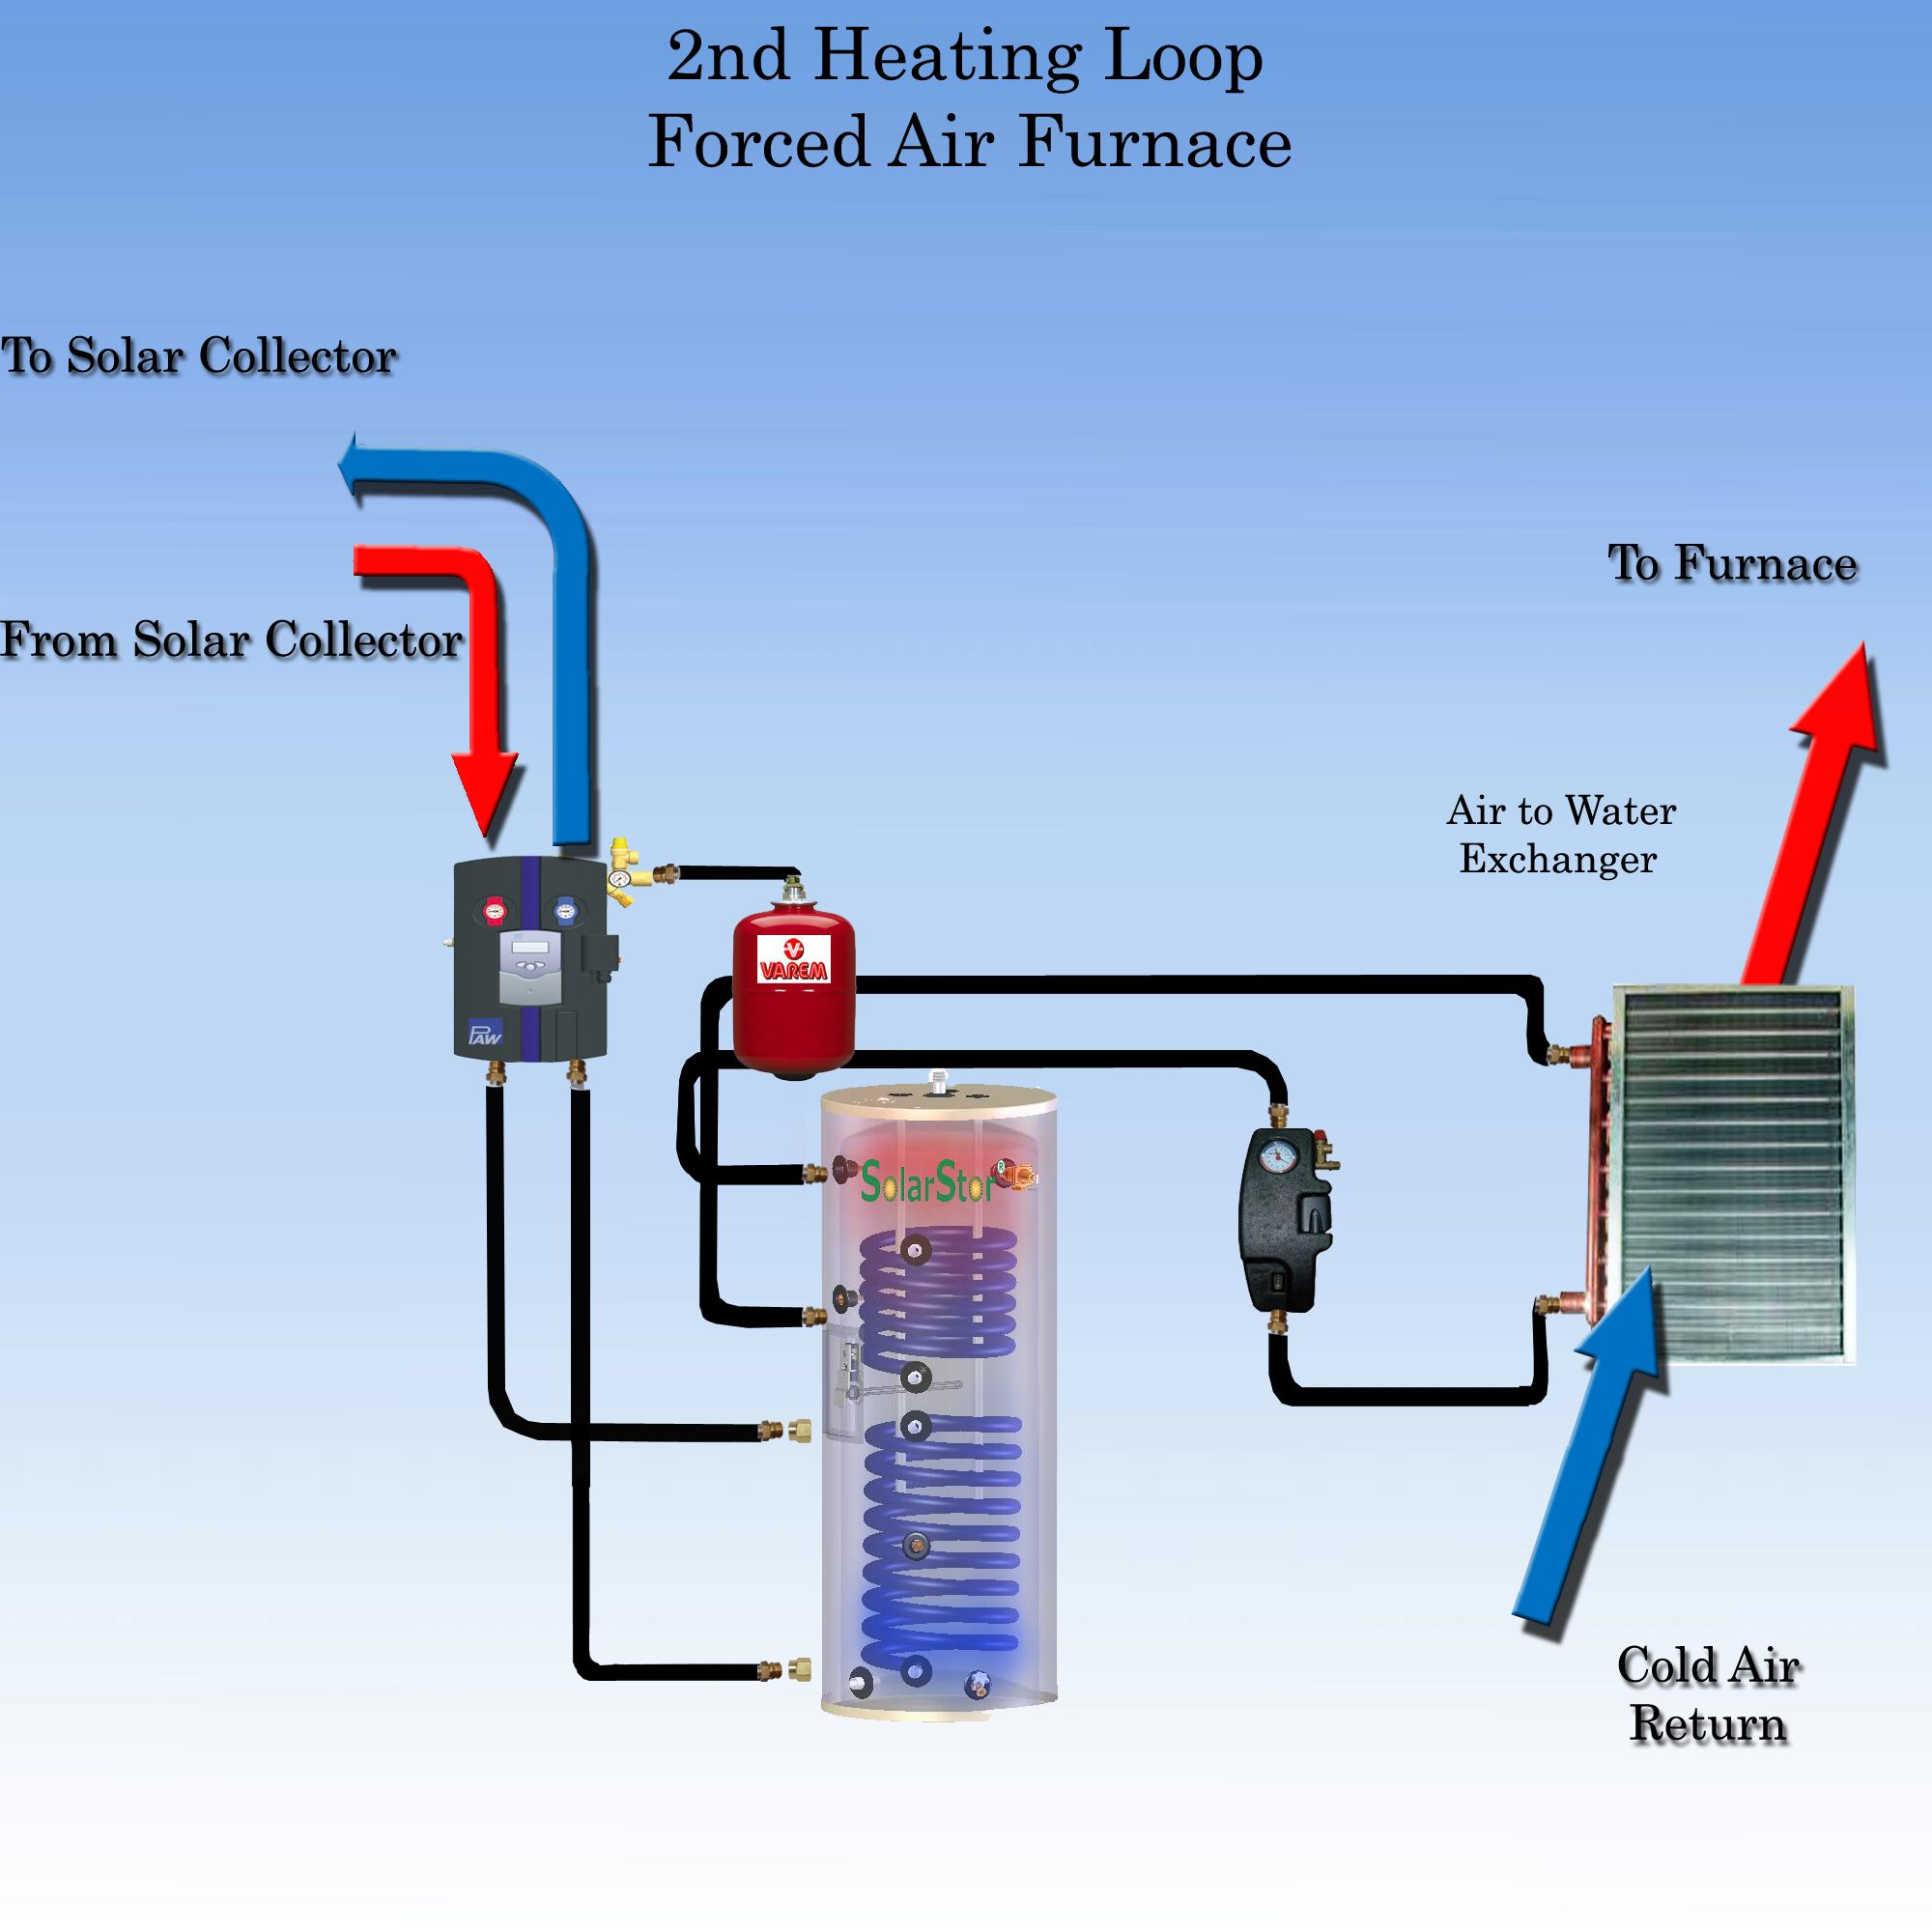 Residential Forced Air Furnace Schematic